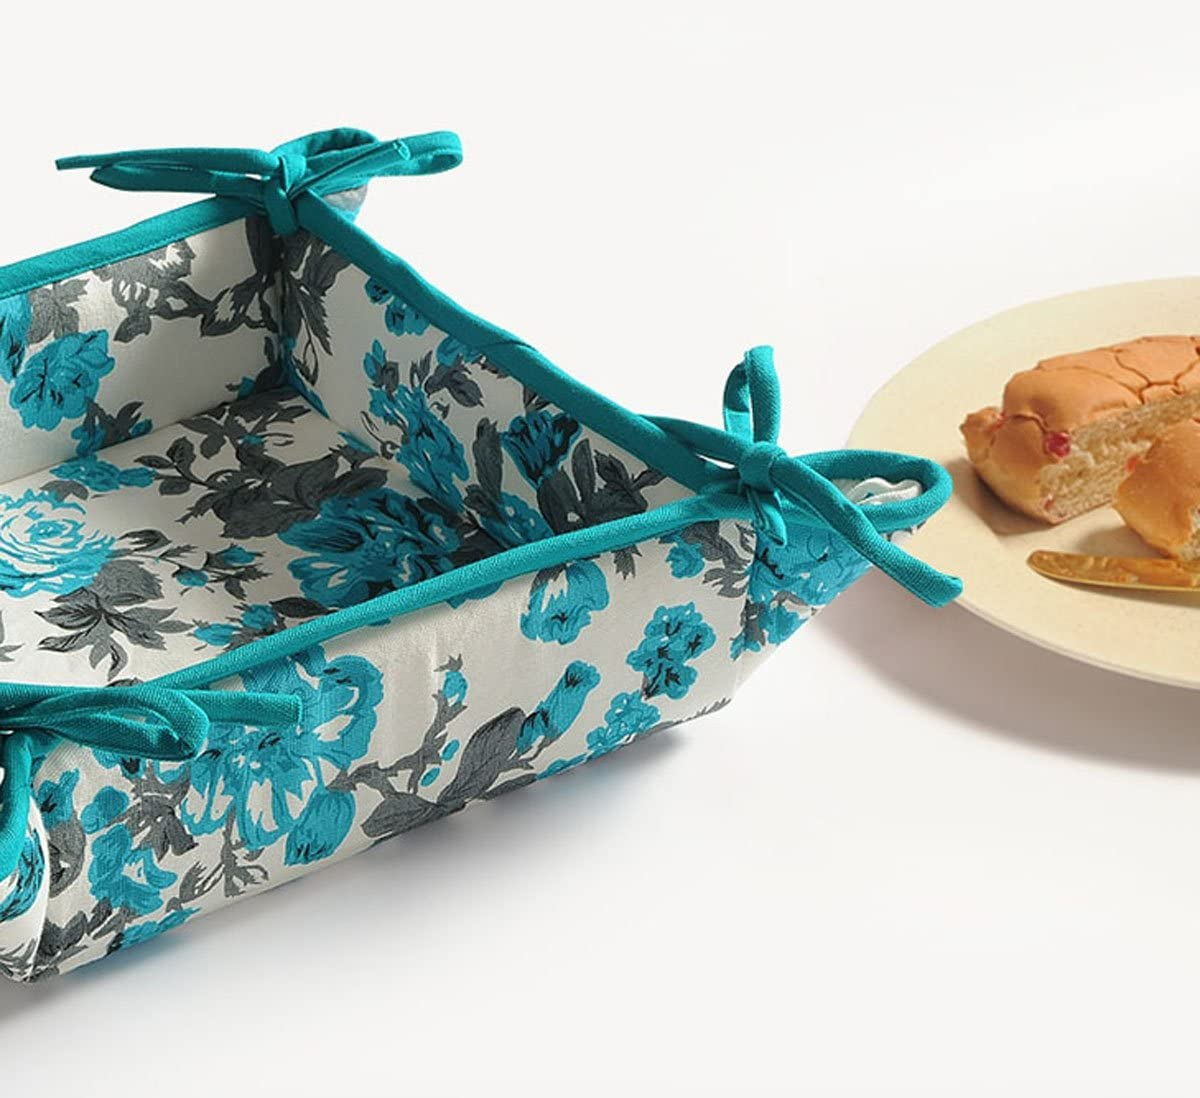 YUGA Floral Printed Teal Blue Kitchen Accessories Square 100/% Cotton Bread Basket